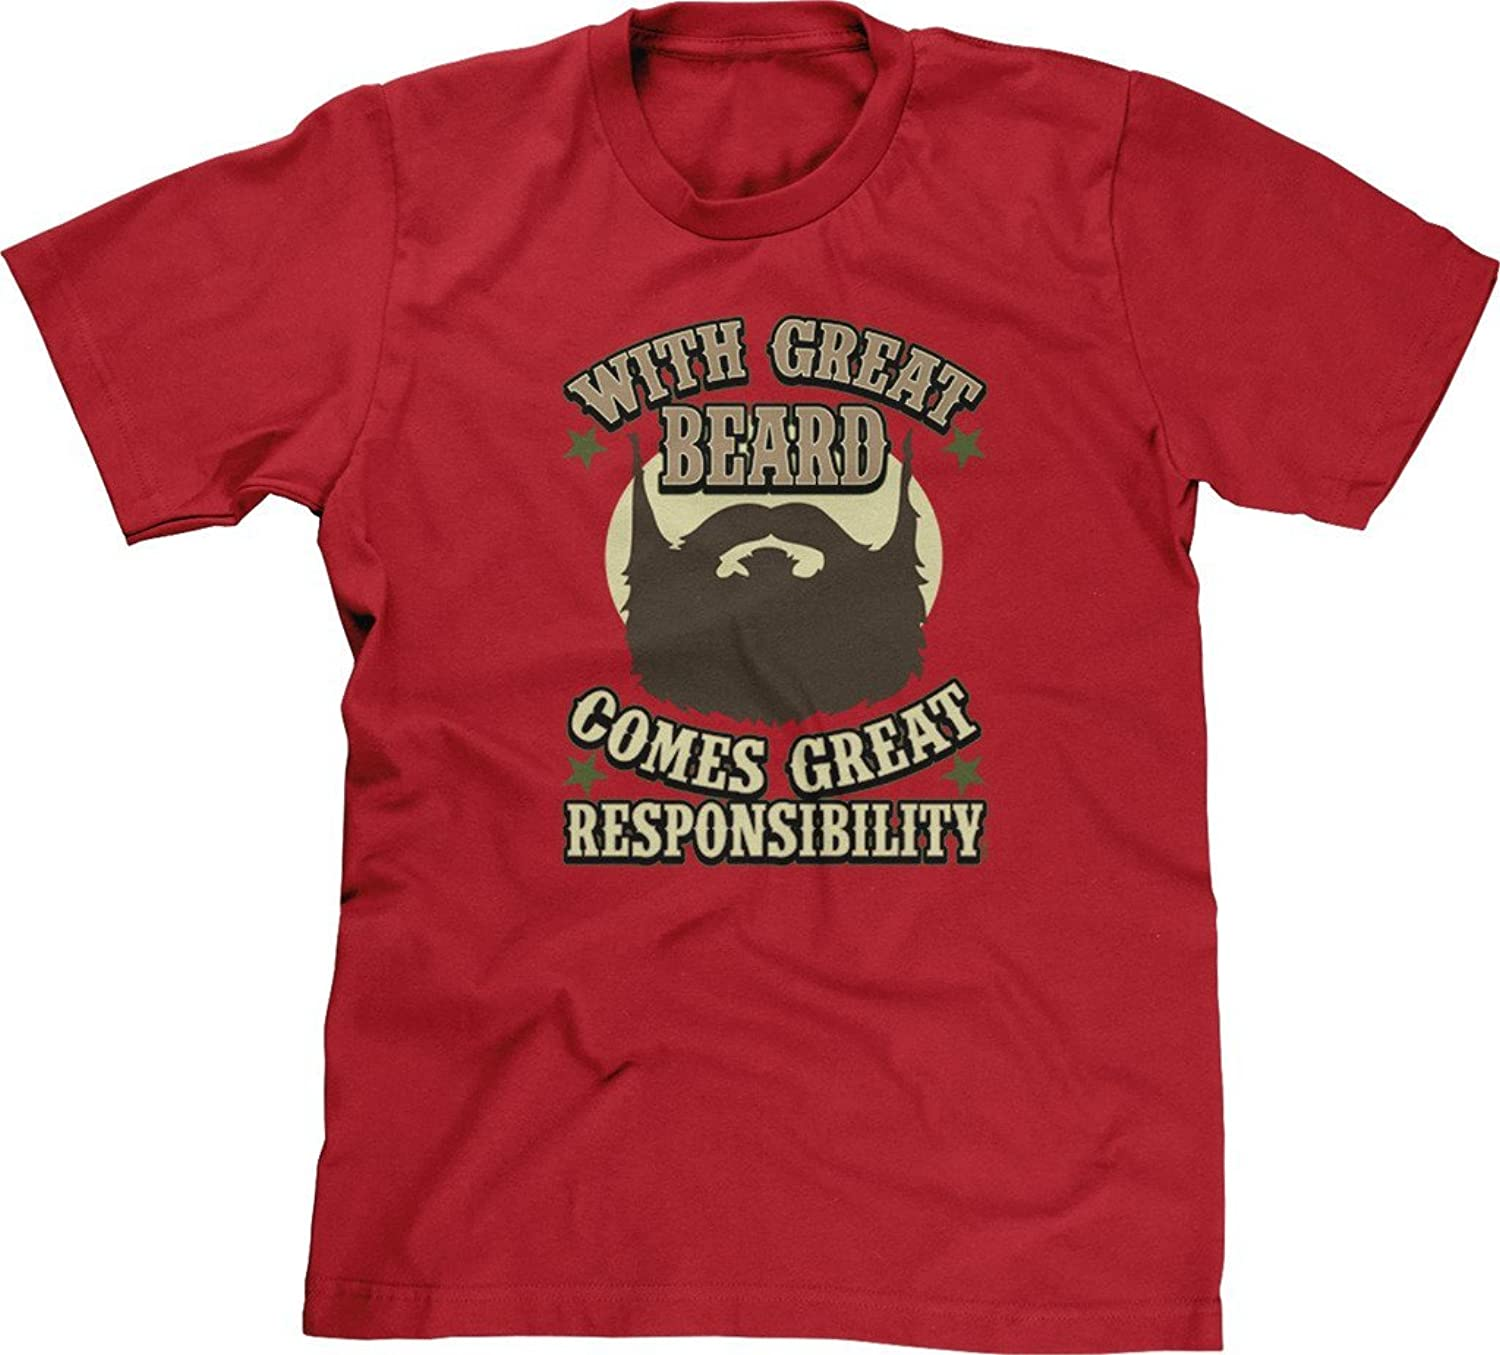 Blittzen Mens T-shirt With Great Beard Comes Responsibility